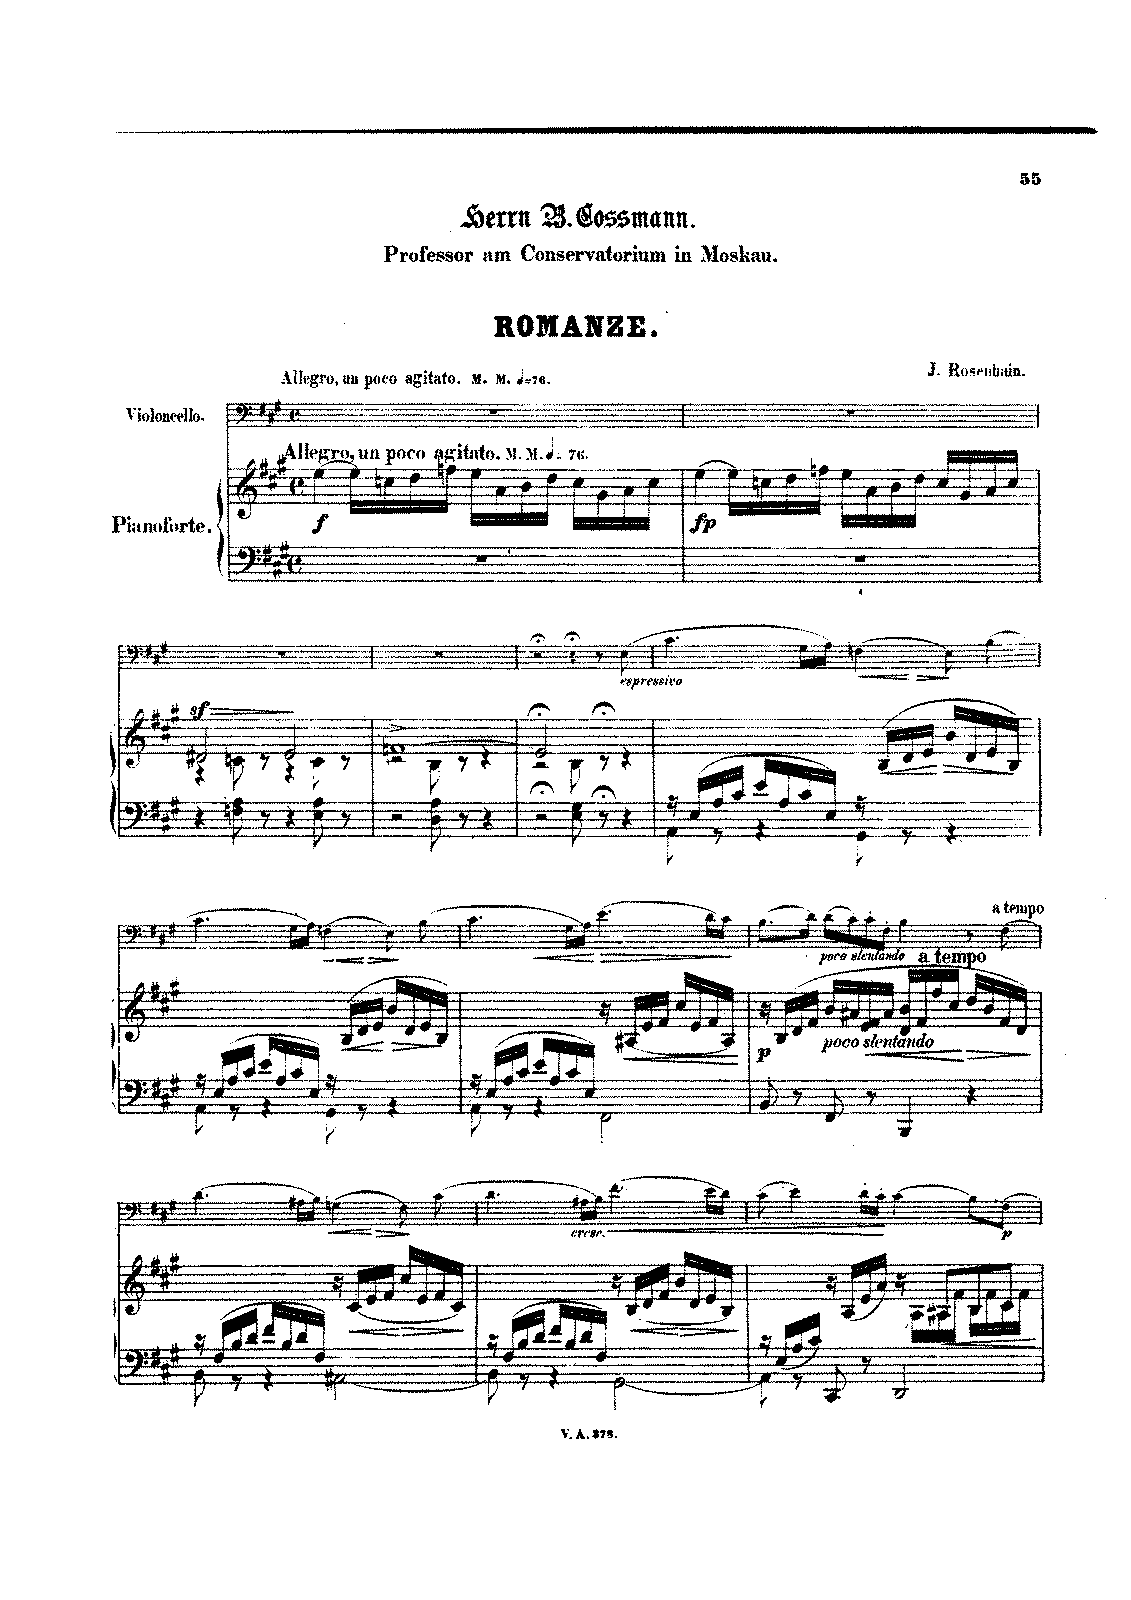 PMLP133320-Rosenhain - Romanze for Cello and Piano score.pdf